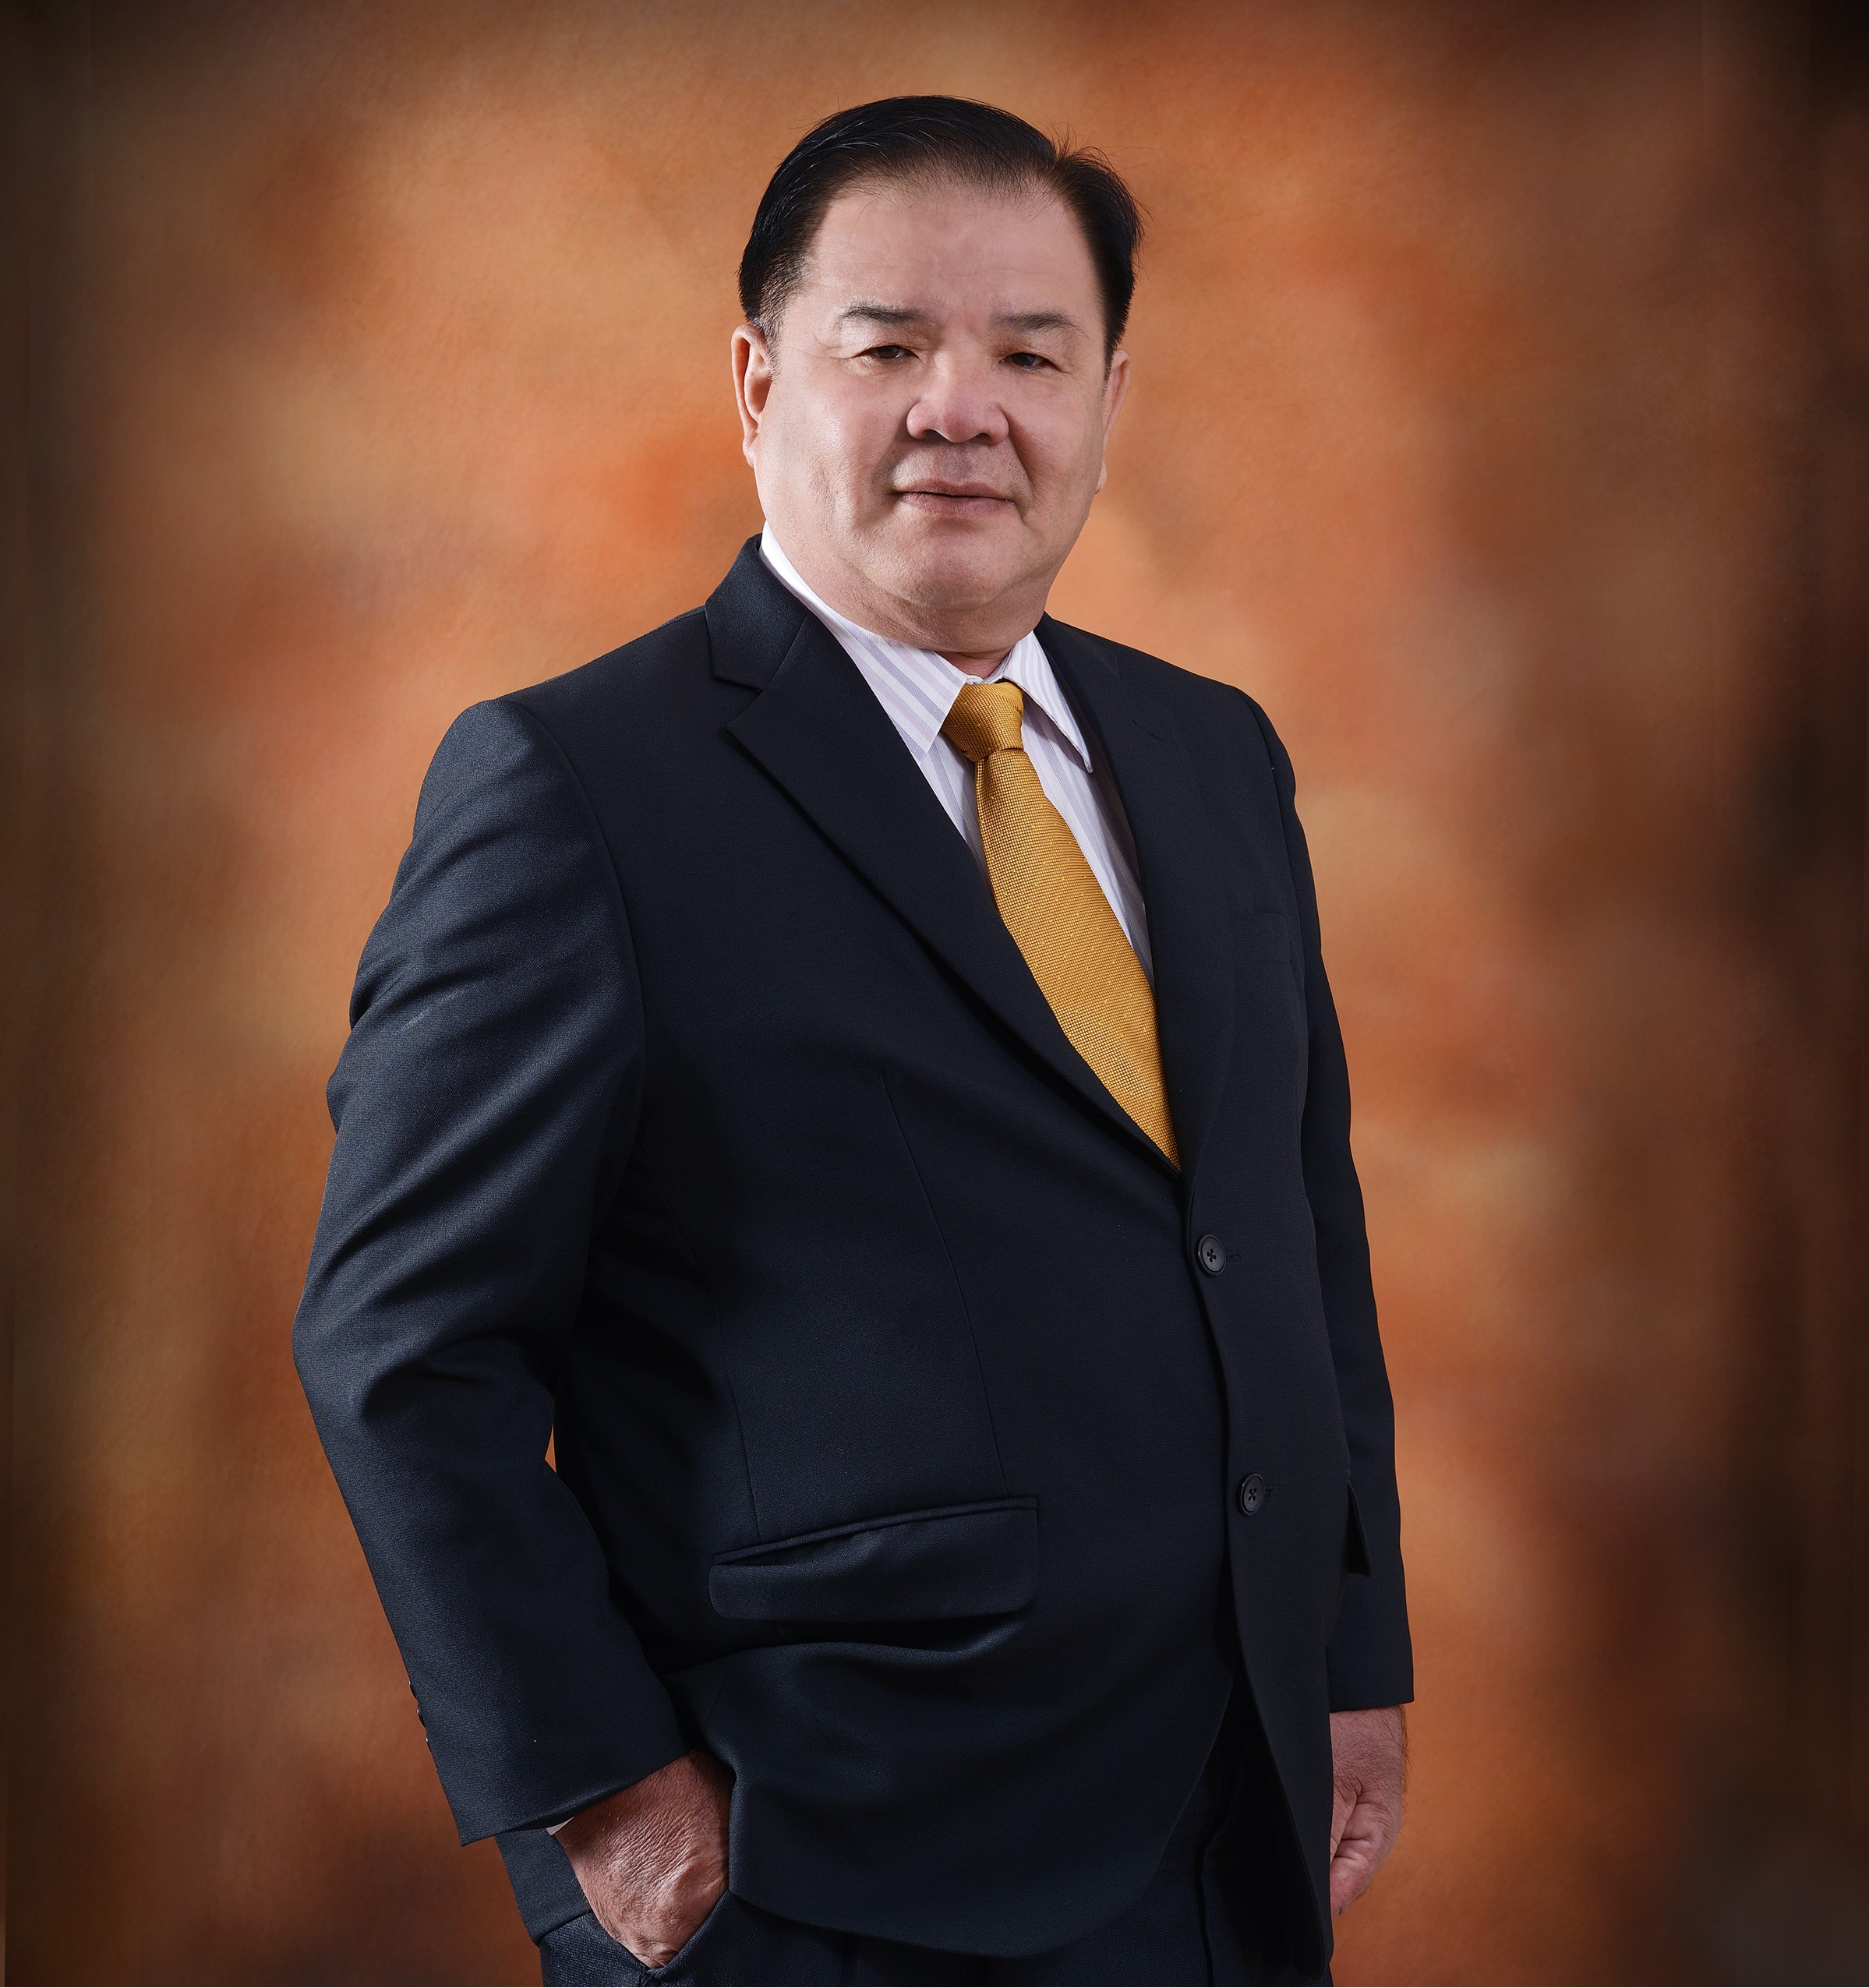 <strong>Dato' Goh Chin Chung</strong>